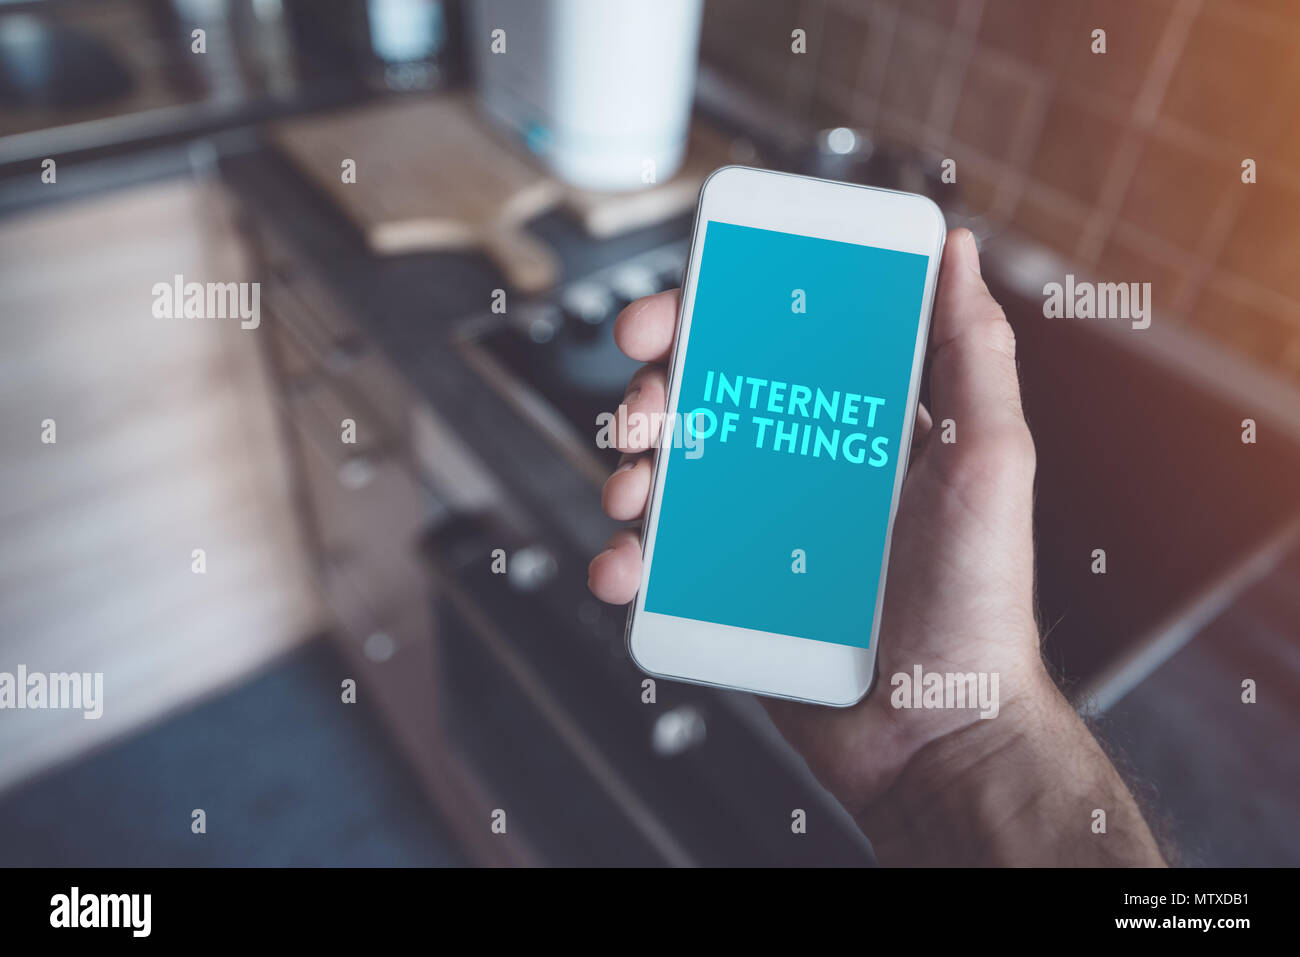 Internet of things, smartphone connecting with ceramic stove top. Smart home kitchen appliance connecting with mobile phone and exchanging data. - Stock Image